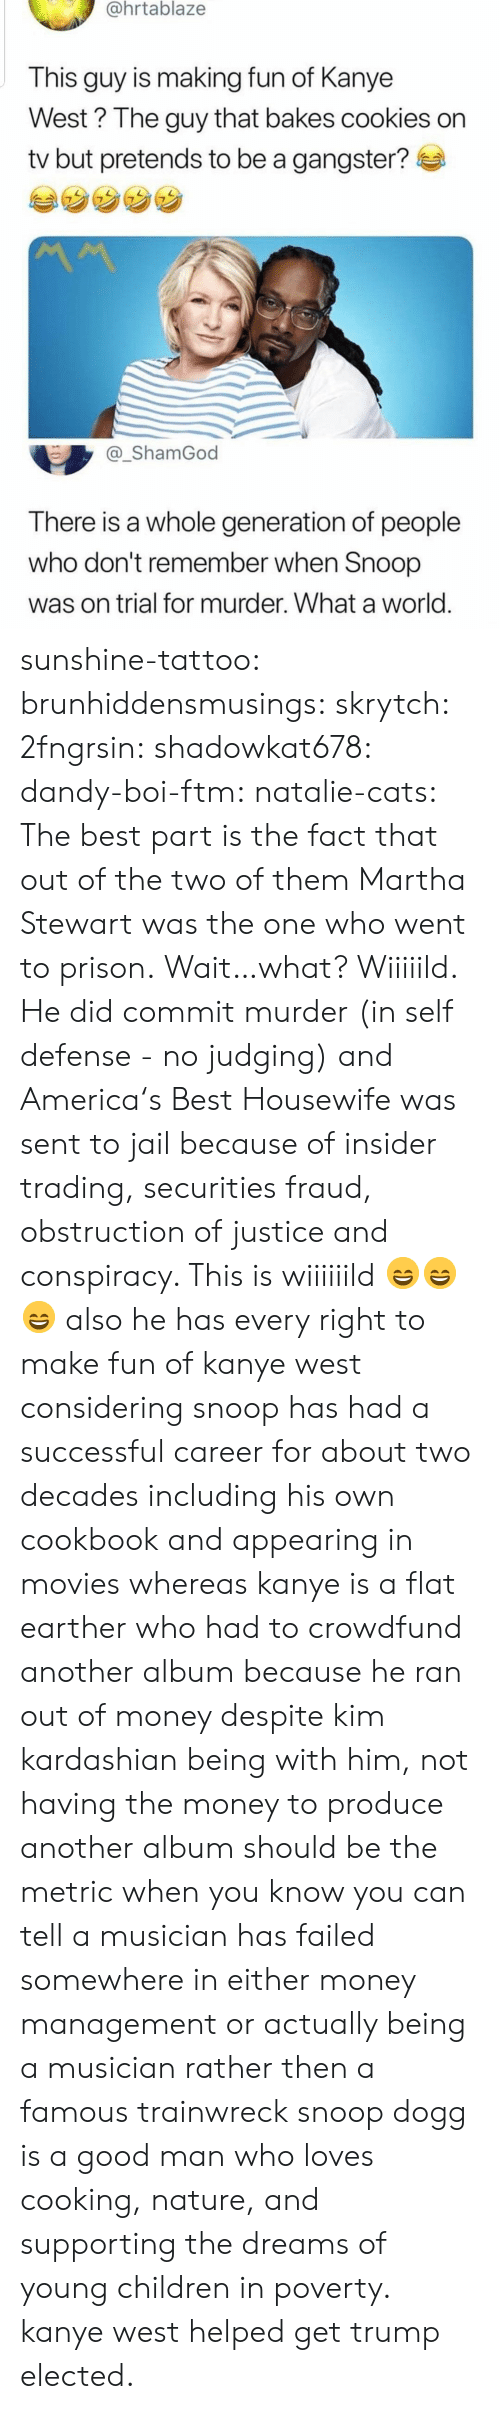 Supporting: @hrtablaze  This guy is making fun of Kanye  West? The guy that bakes cookies on  tv but pretends to be a gangster?  _ShamGod  There is a whole generation of people  who don't remember when Snoop  was on trial for murder. What a world sunshine-tattoo: brunhiddensmusings:  skrytch:  2fngrsin:  shadowkat678:  dandy-boi-ftm:   natalie-cats:   The best part is the fact that out of the two of them Martha Stewart was the one who went to prison.   Wait…what?   Wiiiiild. He did commit murder (in self defense - no judging) and America's Best Housewife was sent to jail because of insider trading, securities fraud, obstruction of justice and conspiracy. This is wiiiiiild 😄😄😄    also he has every right to make fun of kanye west considering snoop has had a successful career for about two decades including his own cookbook and appearing in movies whereas kanye is a flat earther who had to crowdfund another album because he ran out of money despite kim kardashian being with him, not having the money to produce another album should be the metric when you know you can tell a musician has failed somewhere in either money management or actually being a musician rather then a famous trainwreck   snoop dogg is a good man who loves cooking, nature, and supporting the dreams of young children in poverty. kanye west helped get trump elected.